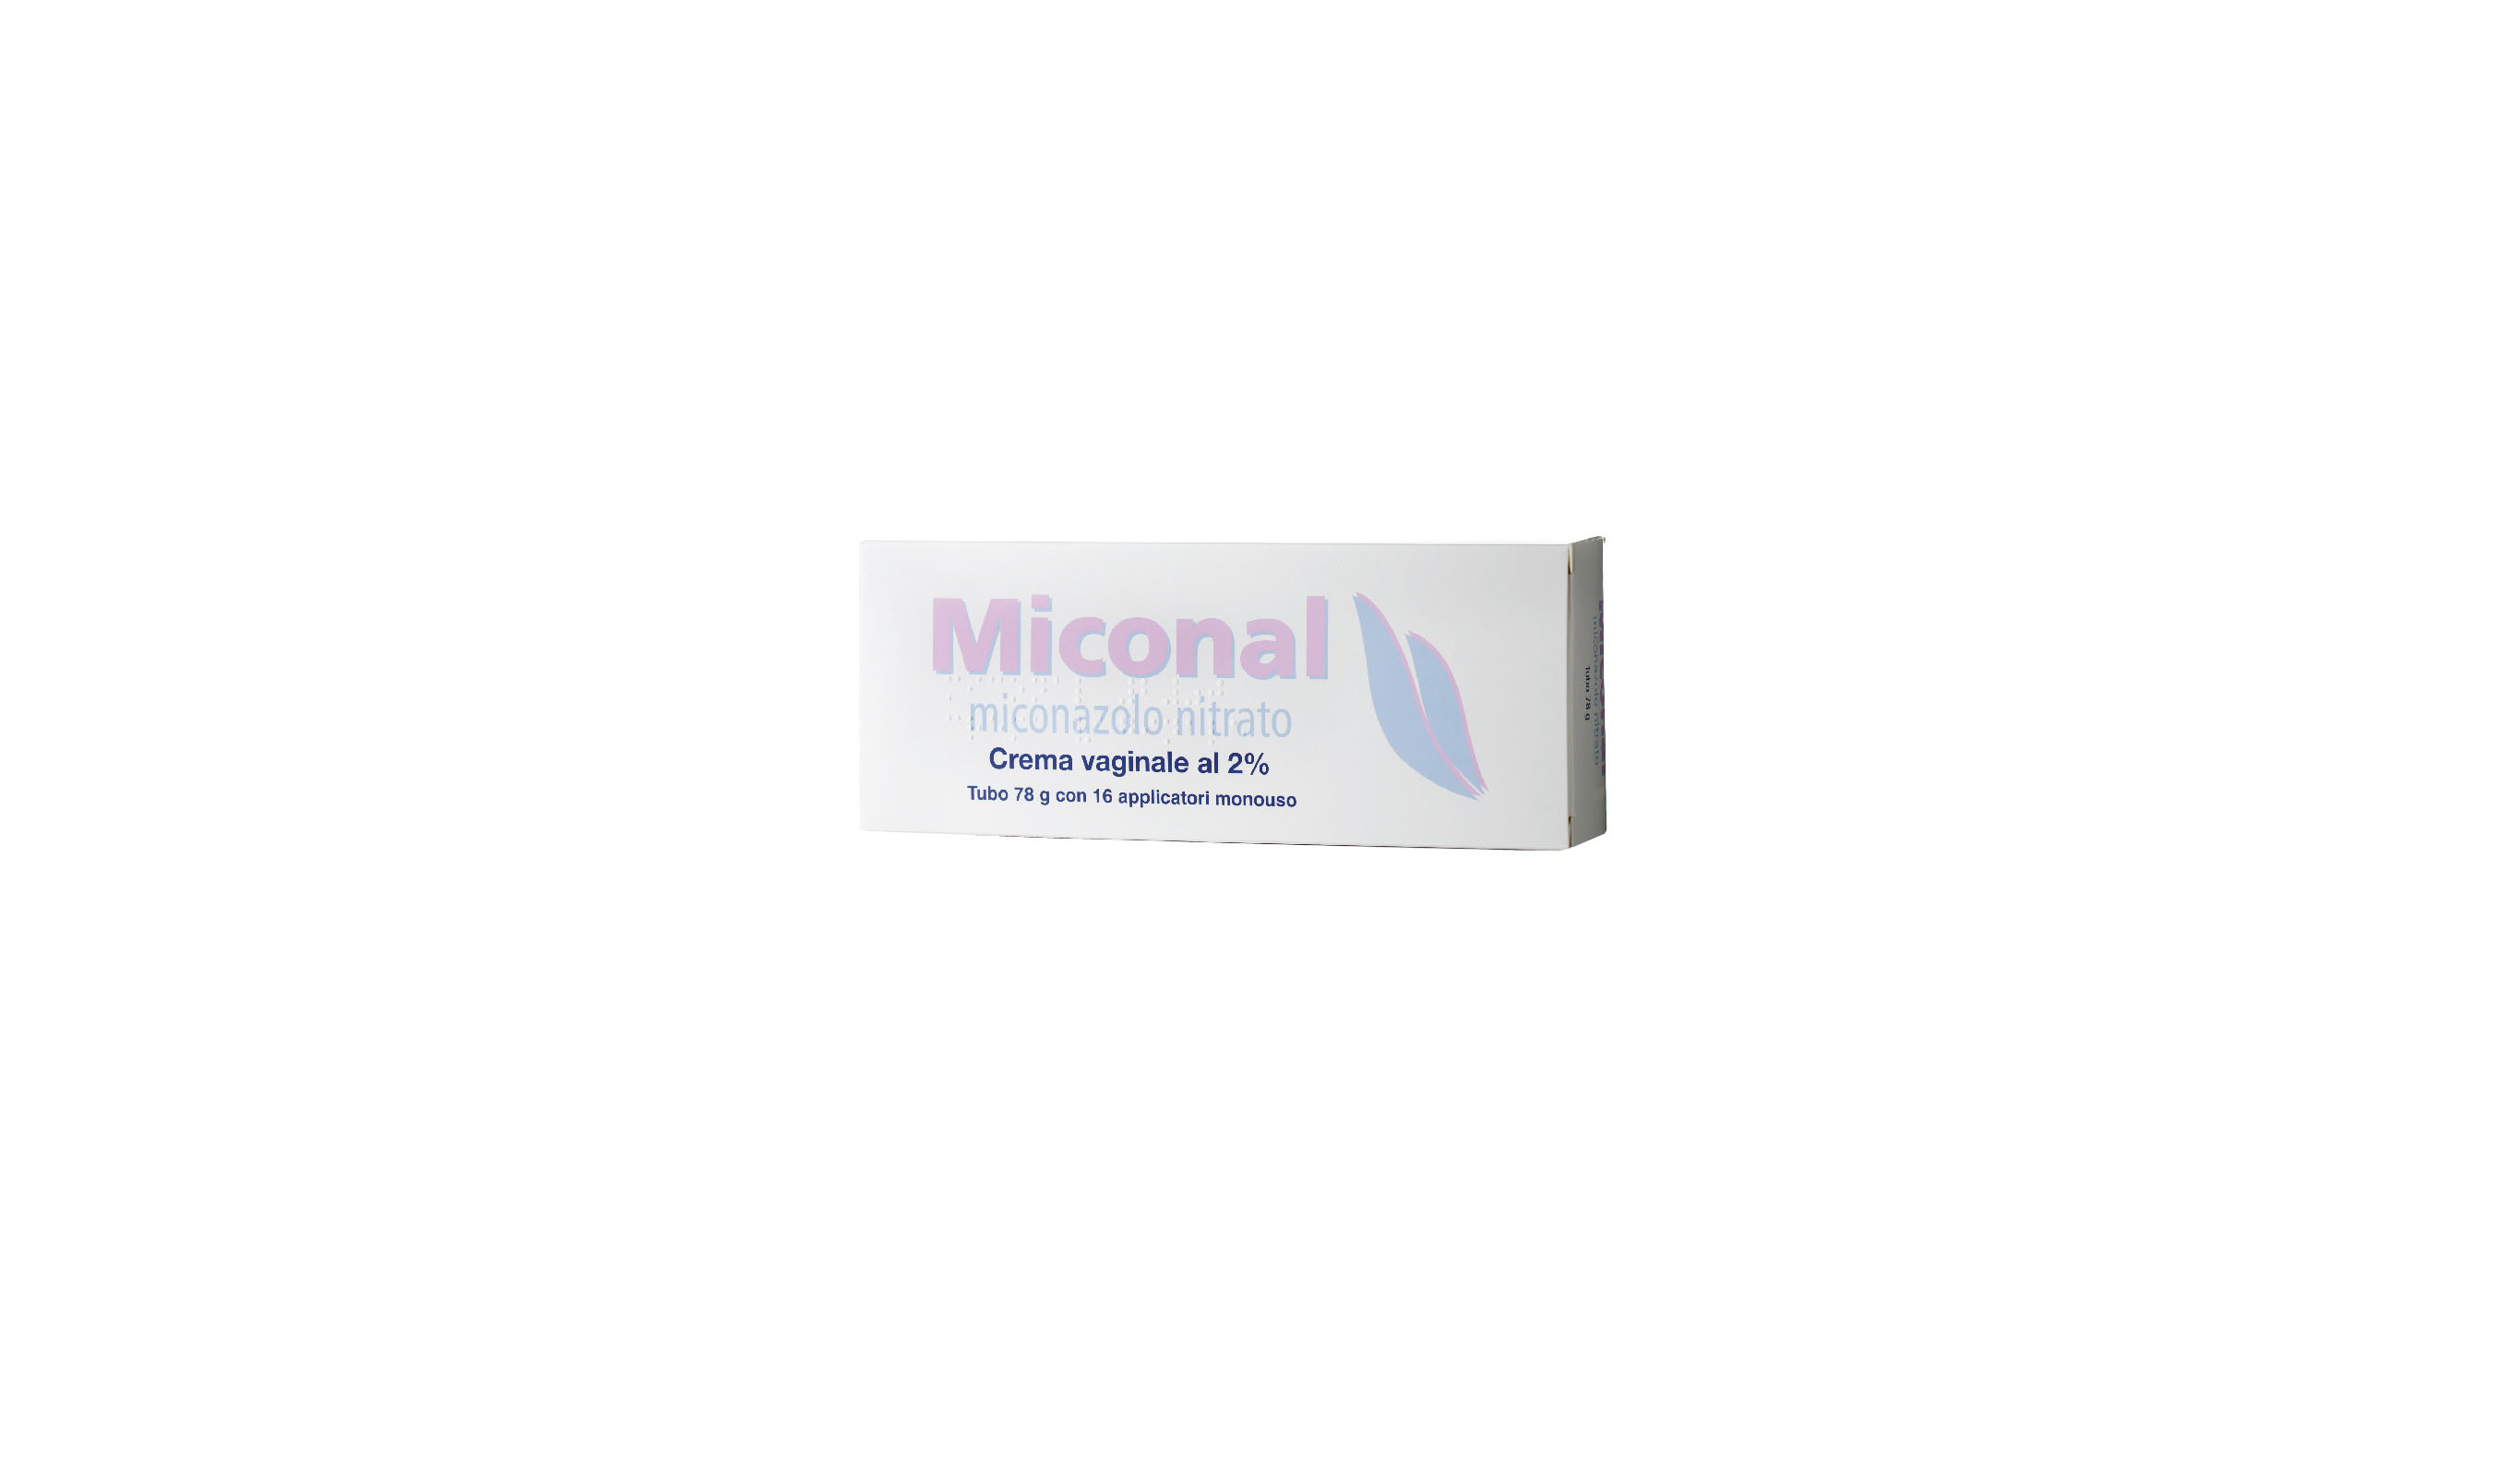 Miconal 2% Crema Vaginale 78g + Applicatori - Zfarmacia